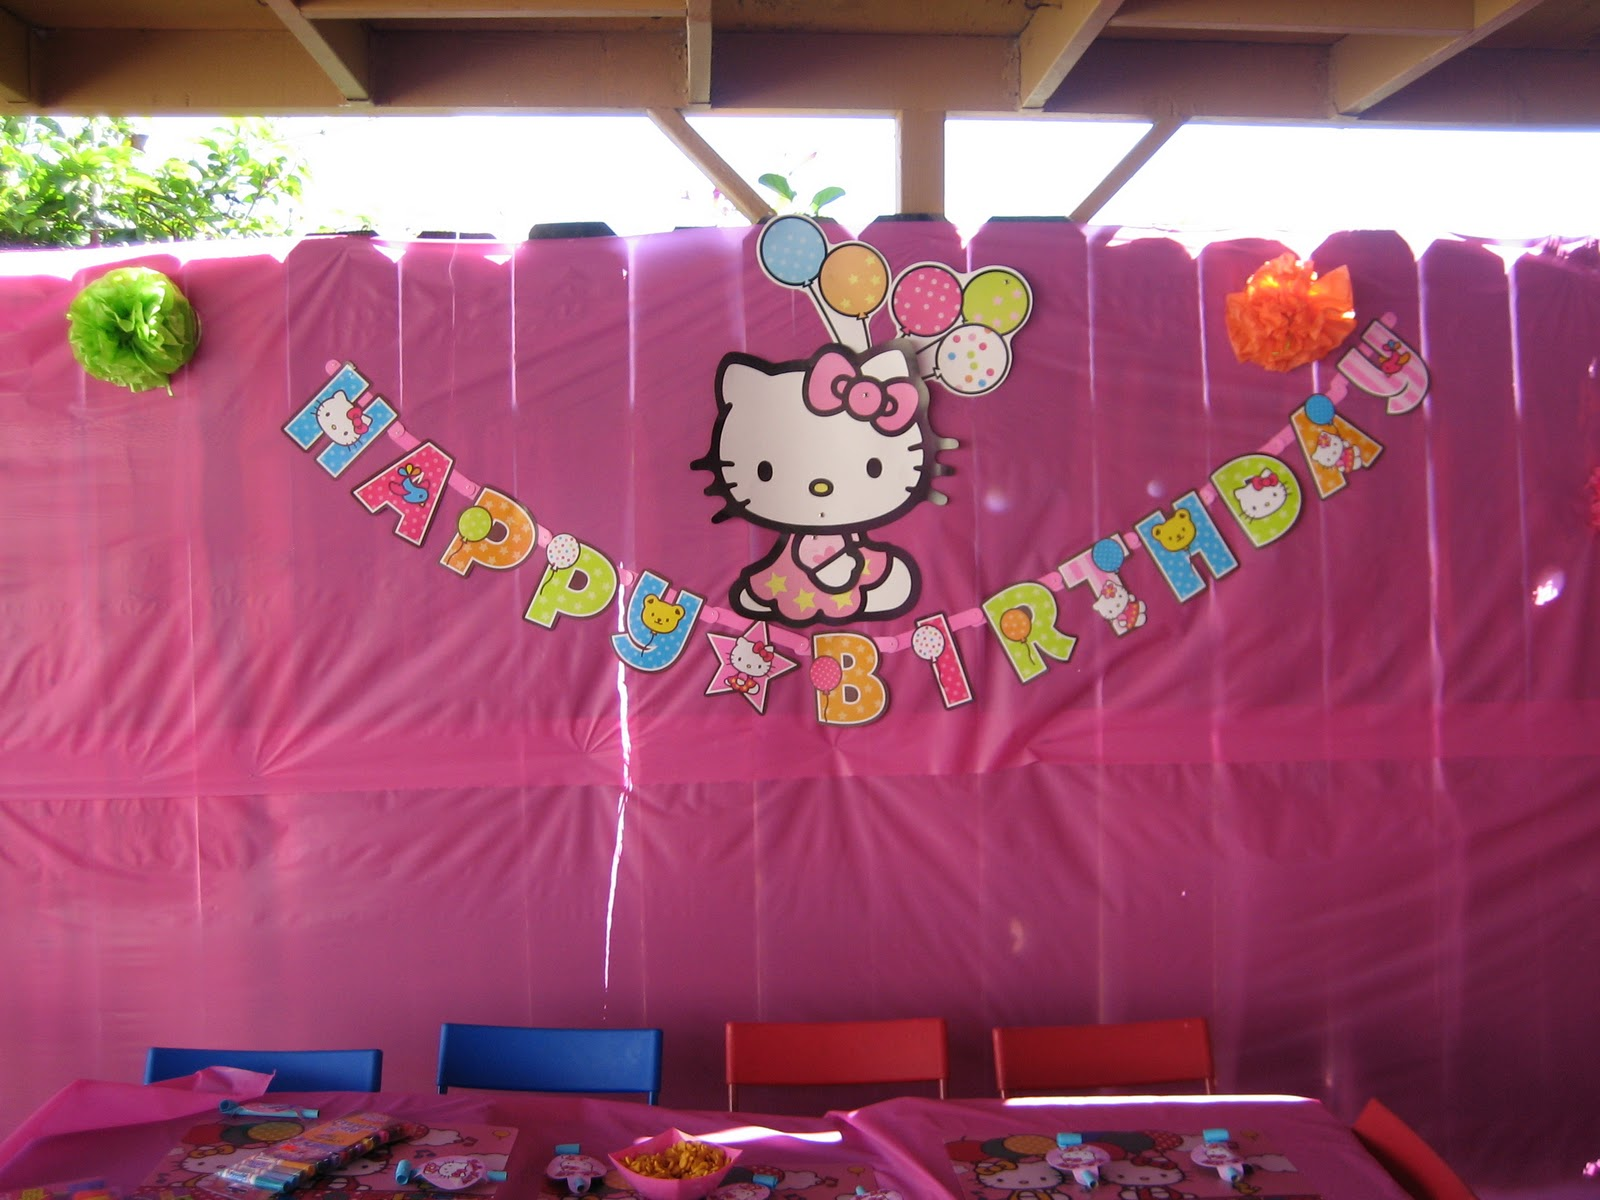 The Sweet Simple Sisters Hello Kitty 7th Birthday Party